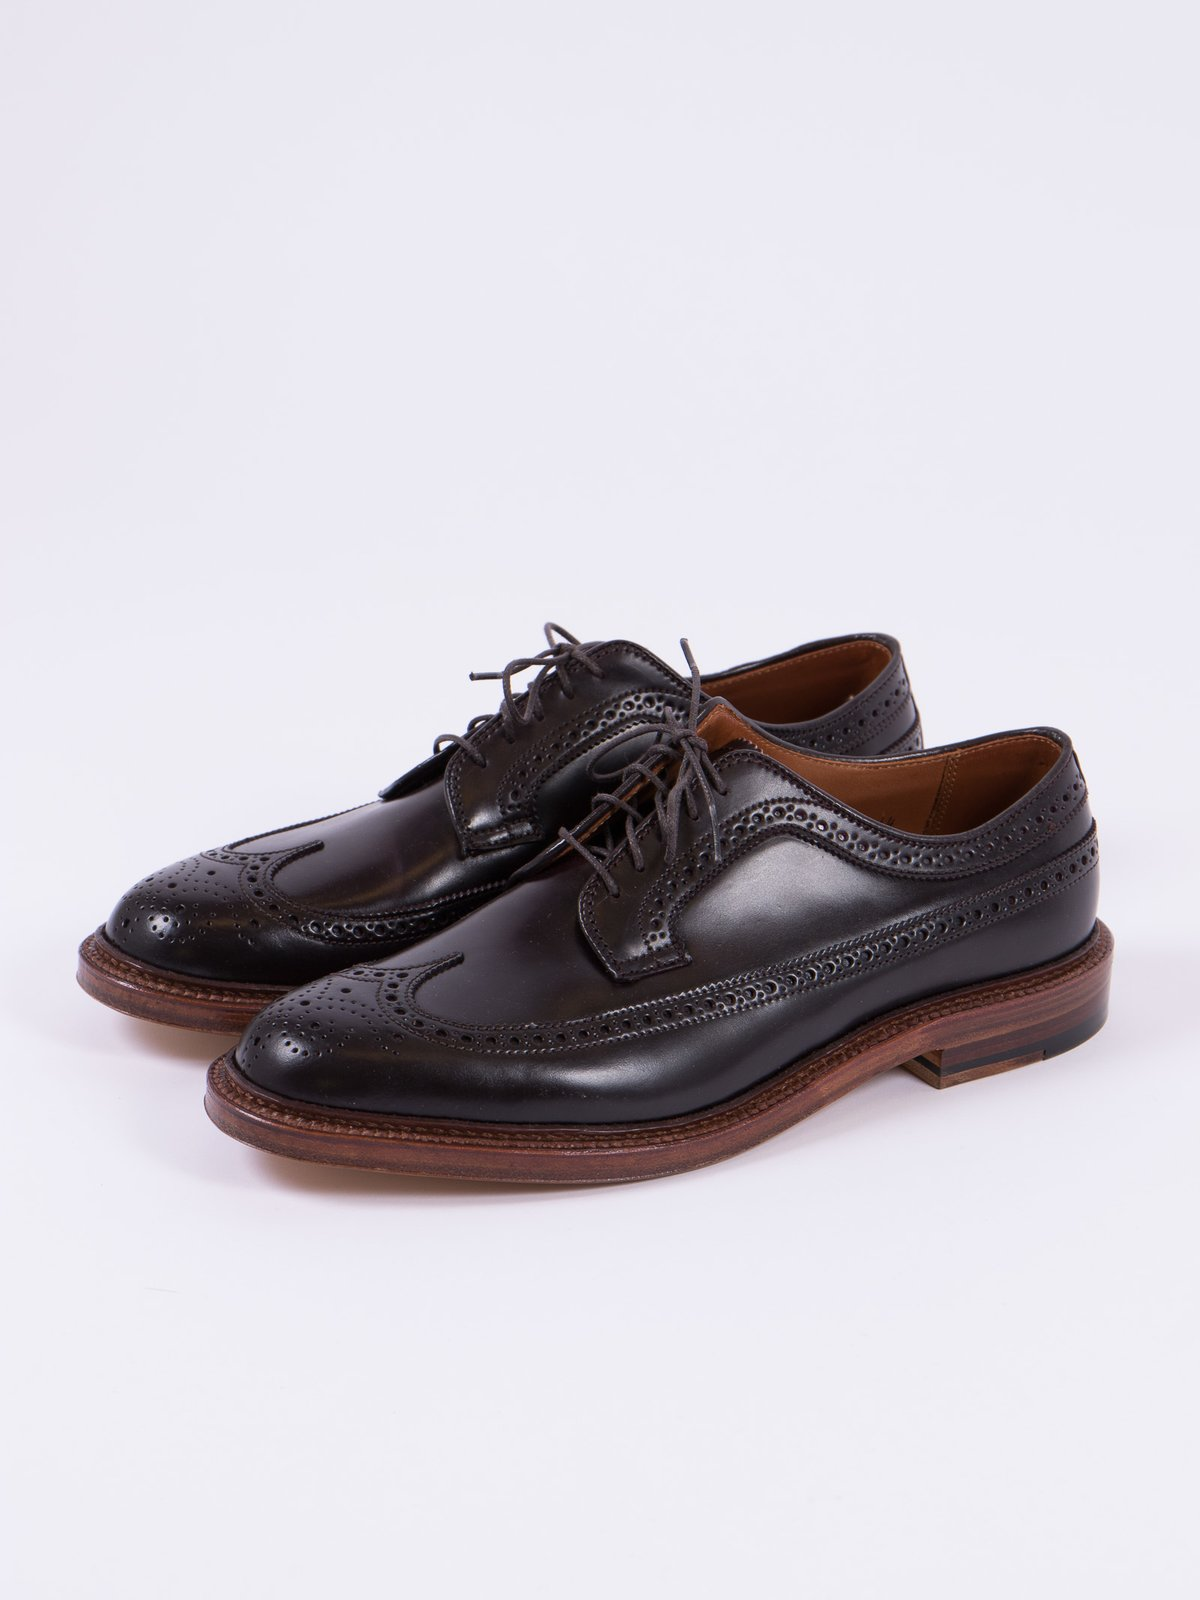 Color 8 Cordovan Long Wing Blucher - Image 2